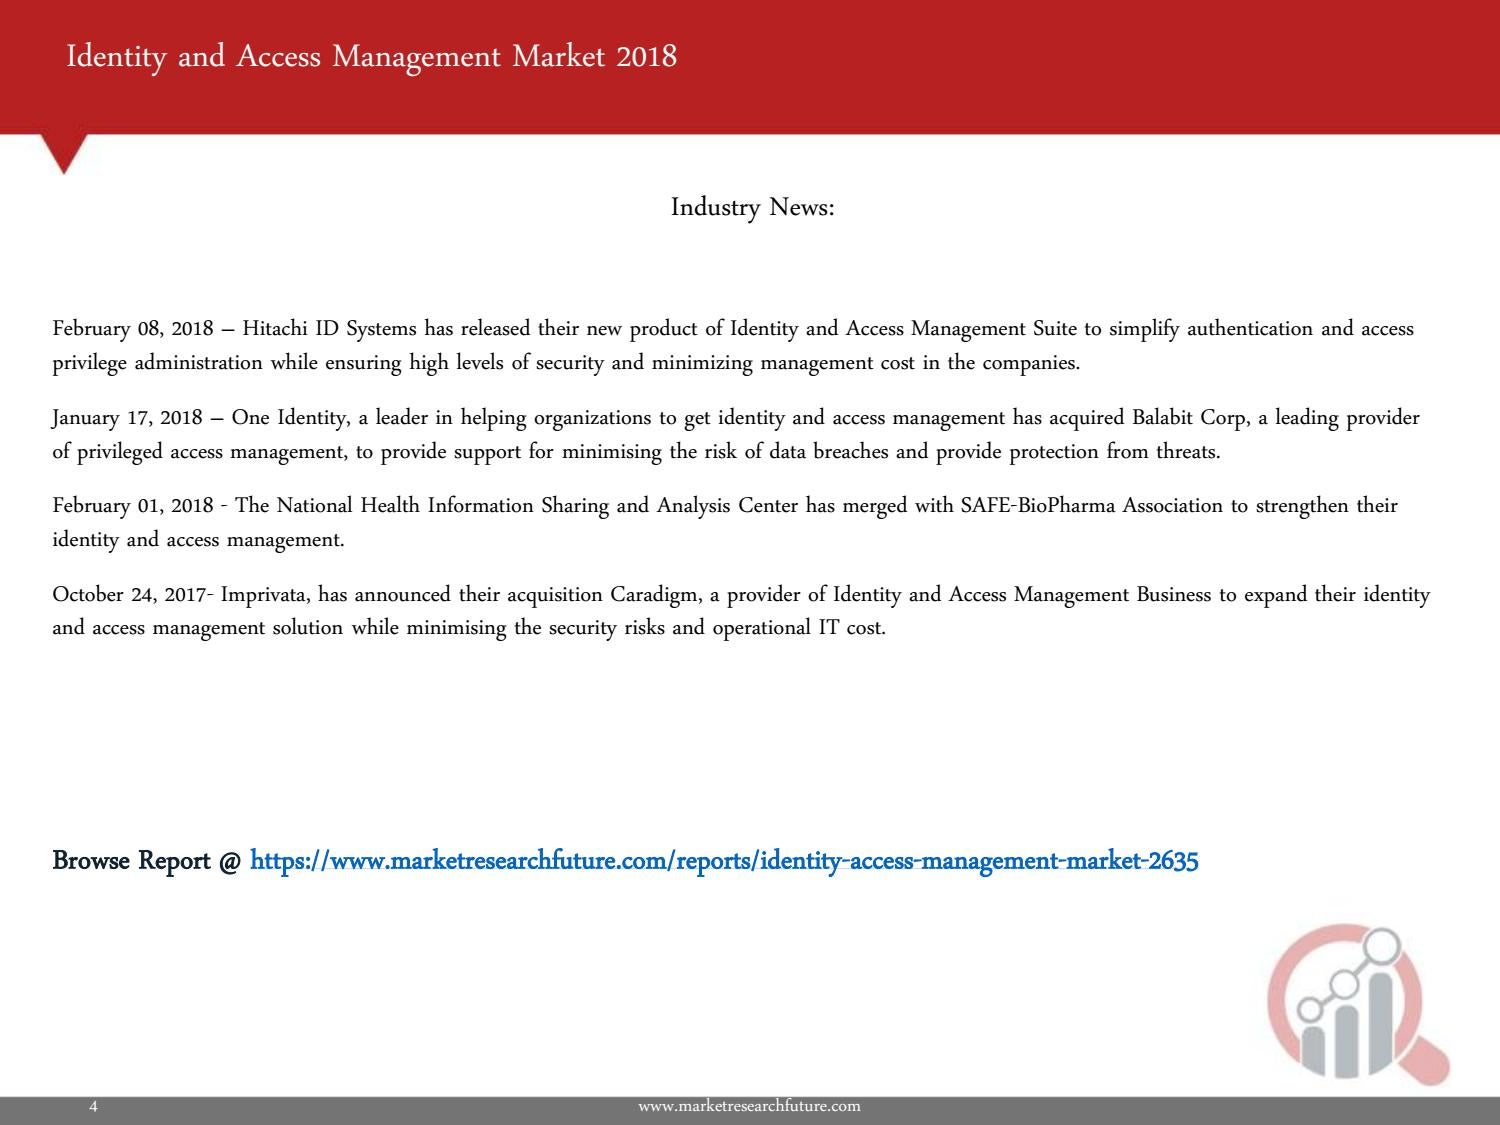 Identity and Access Management Market Size, Growth and